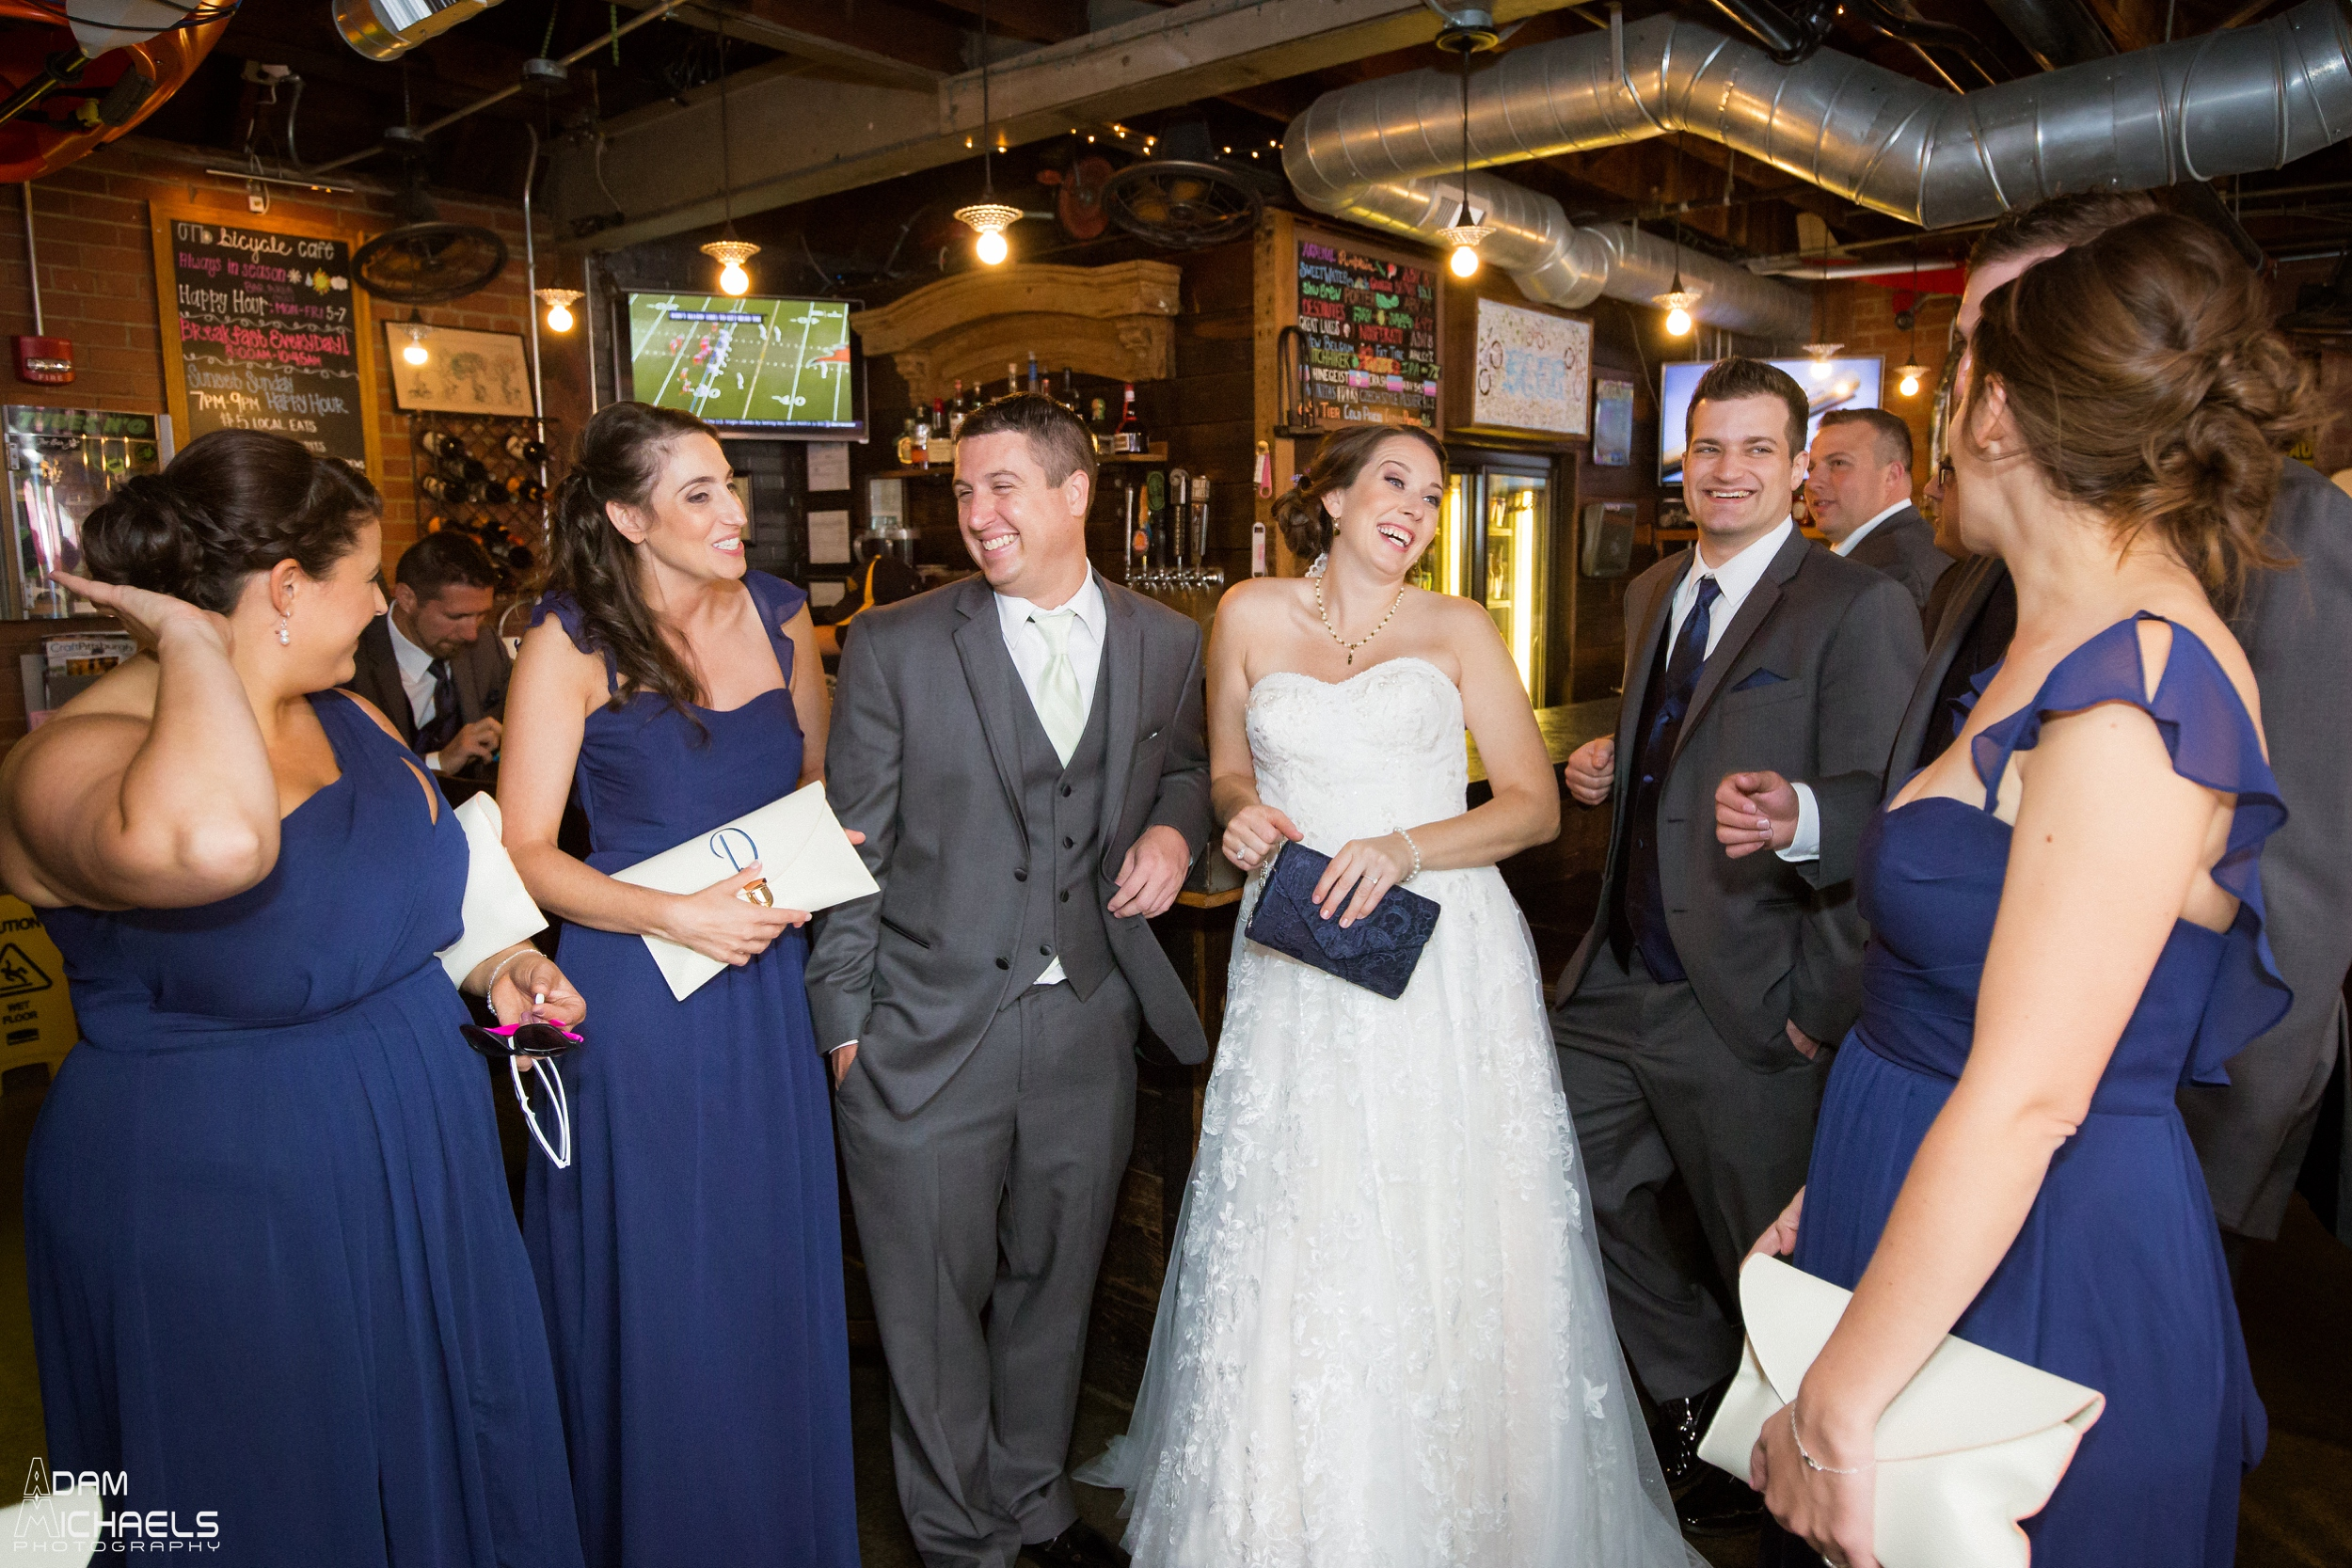 North Park boathouse Wedding Pictures_1166.jpg